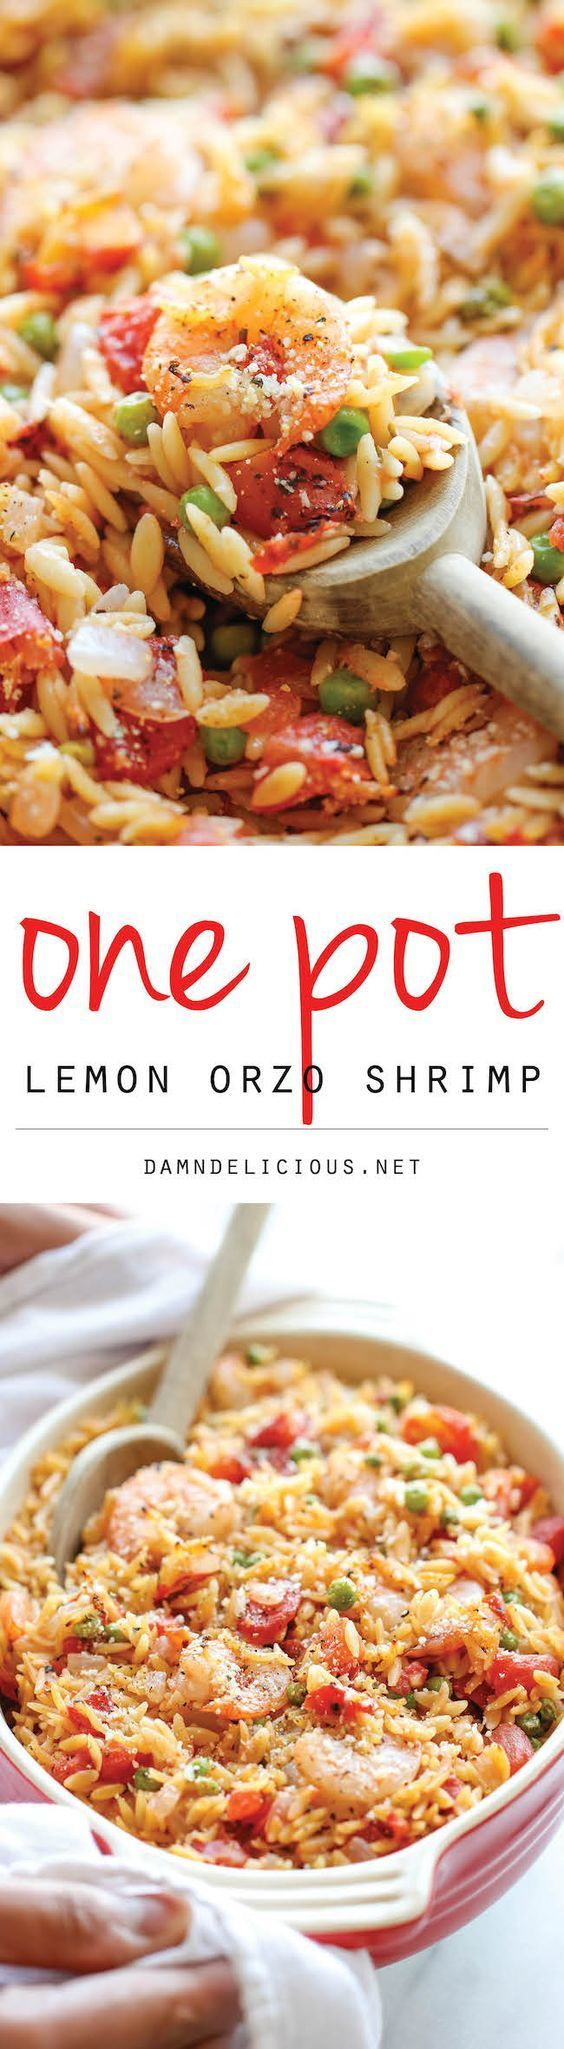 One Pot Lemon Orzo Shrimp.   A super easy one pot meal that the whole family will love!